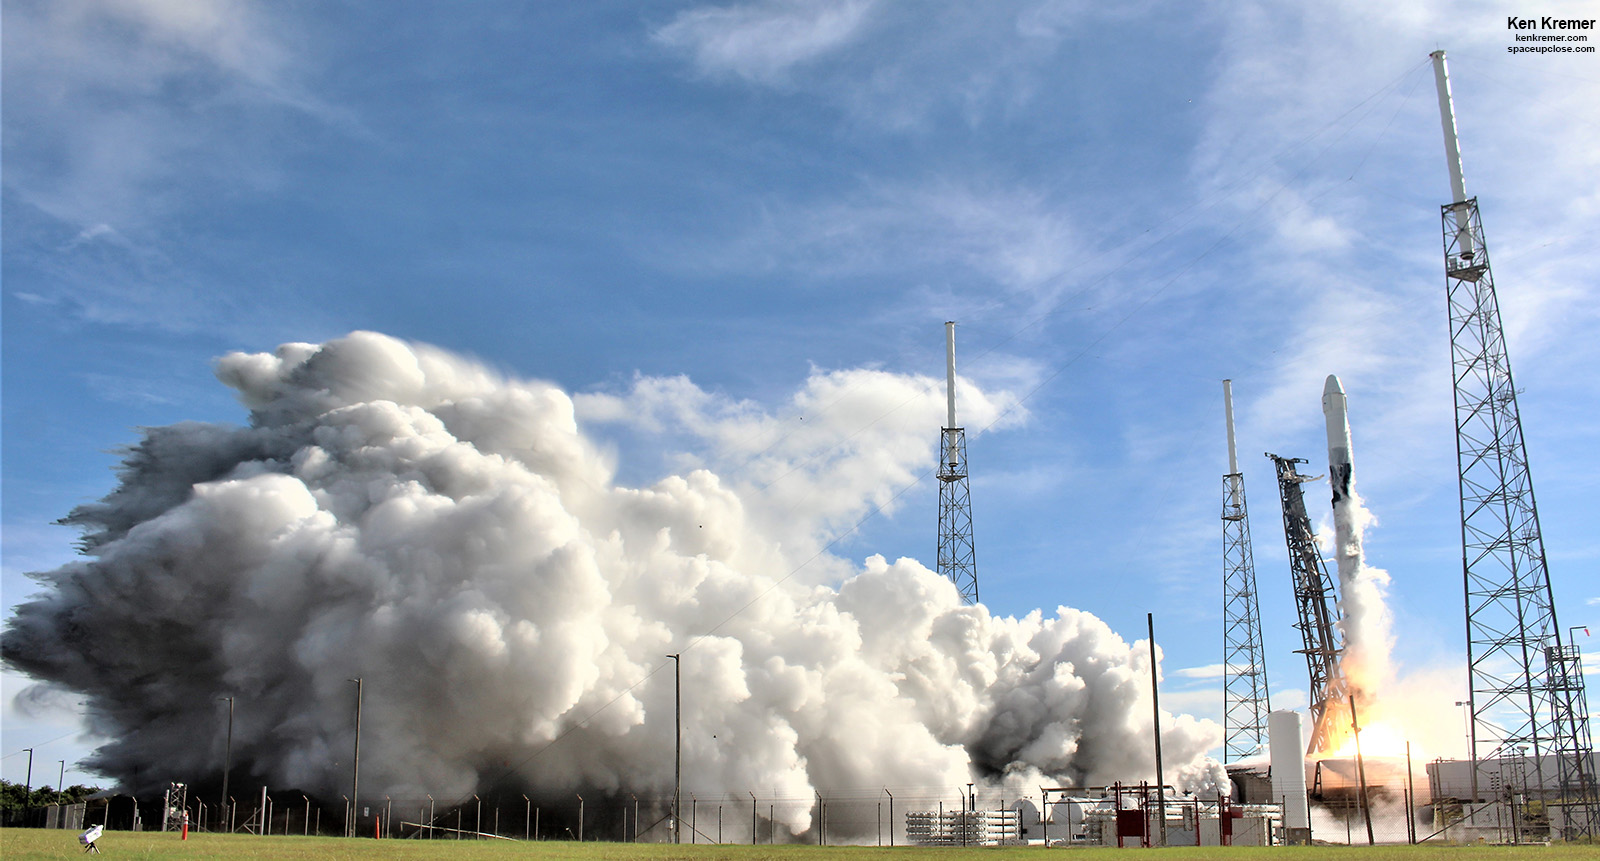 Busy December Cape Launch Schedule Starts with SpaceX Closing Out 2019 with Key Station Missions